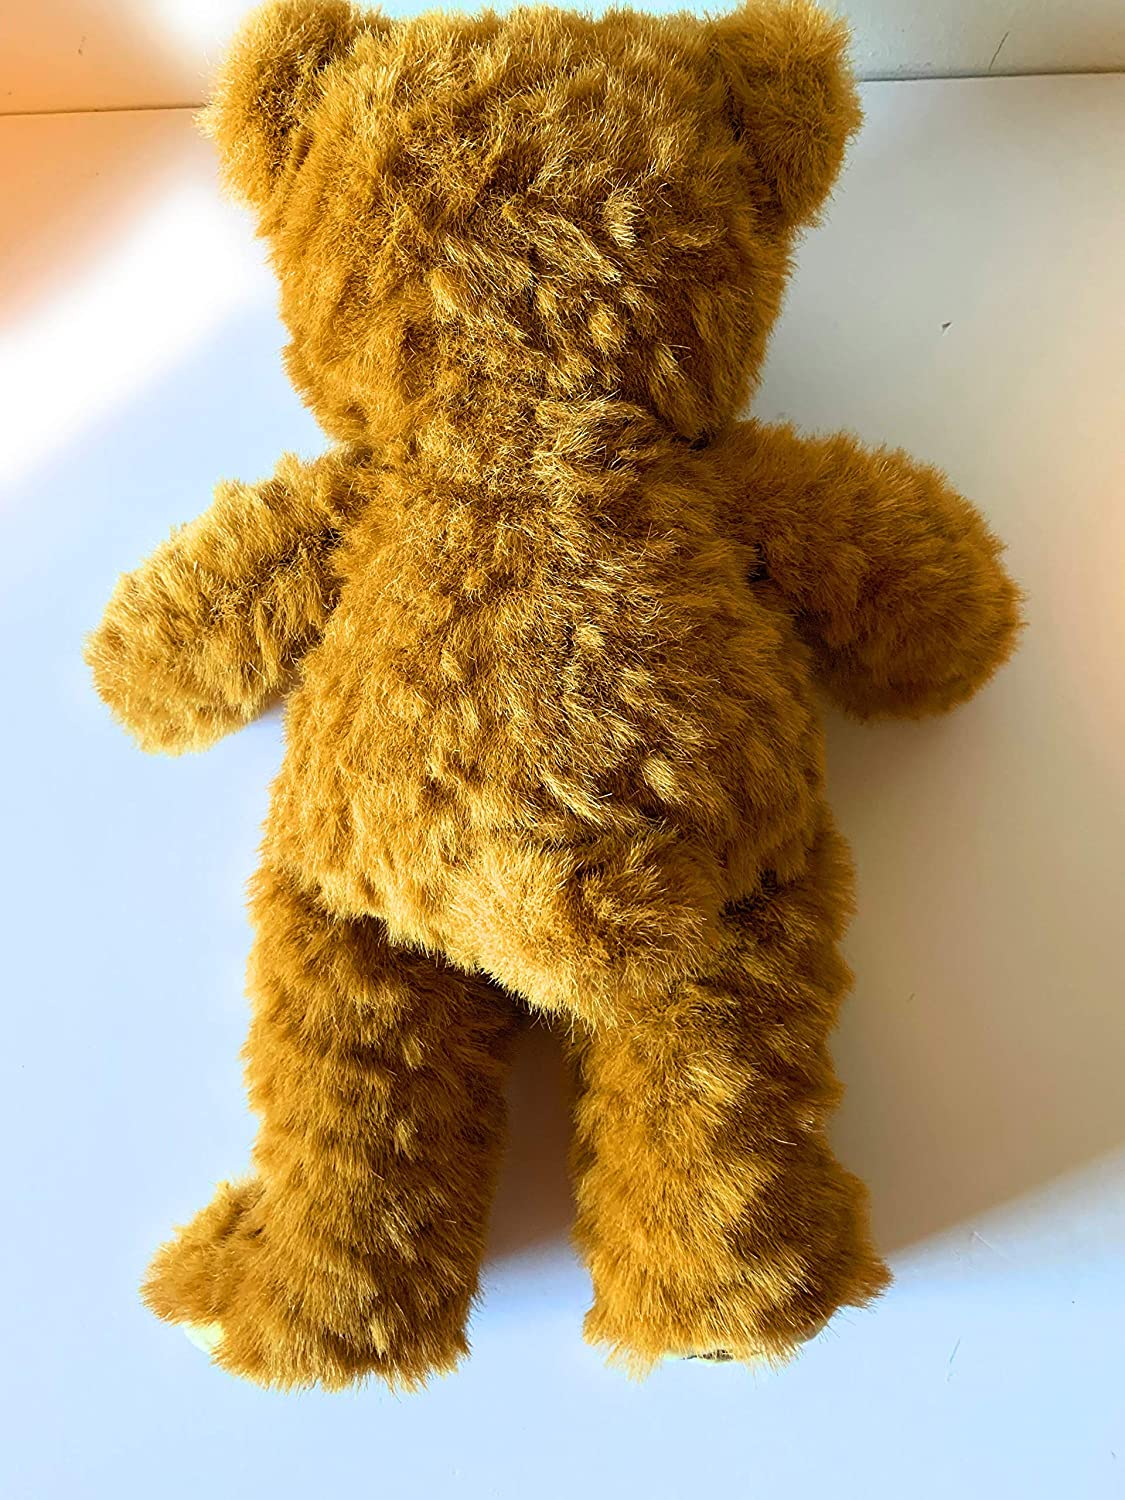 teddy bear Weighted stuffed animal washable weighted buddy 3 lbs sensory toy